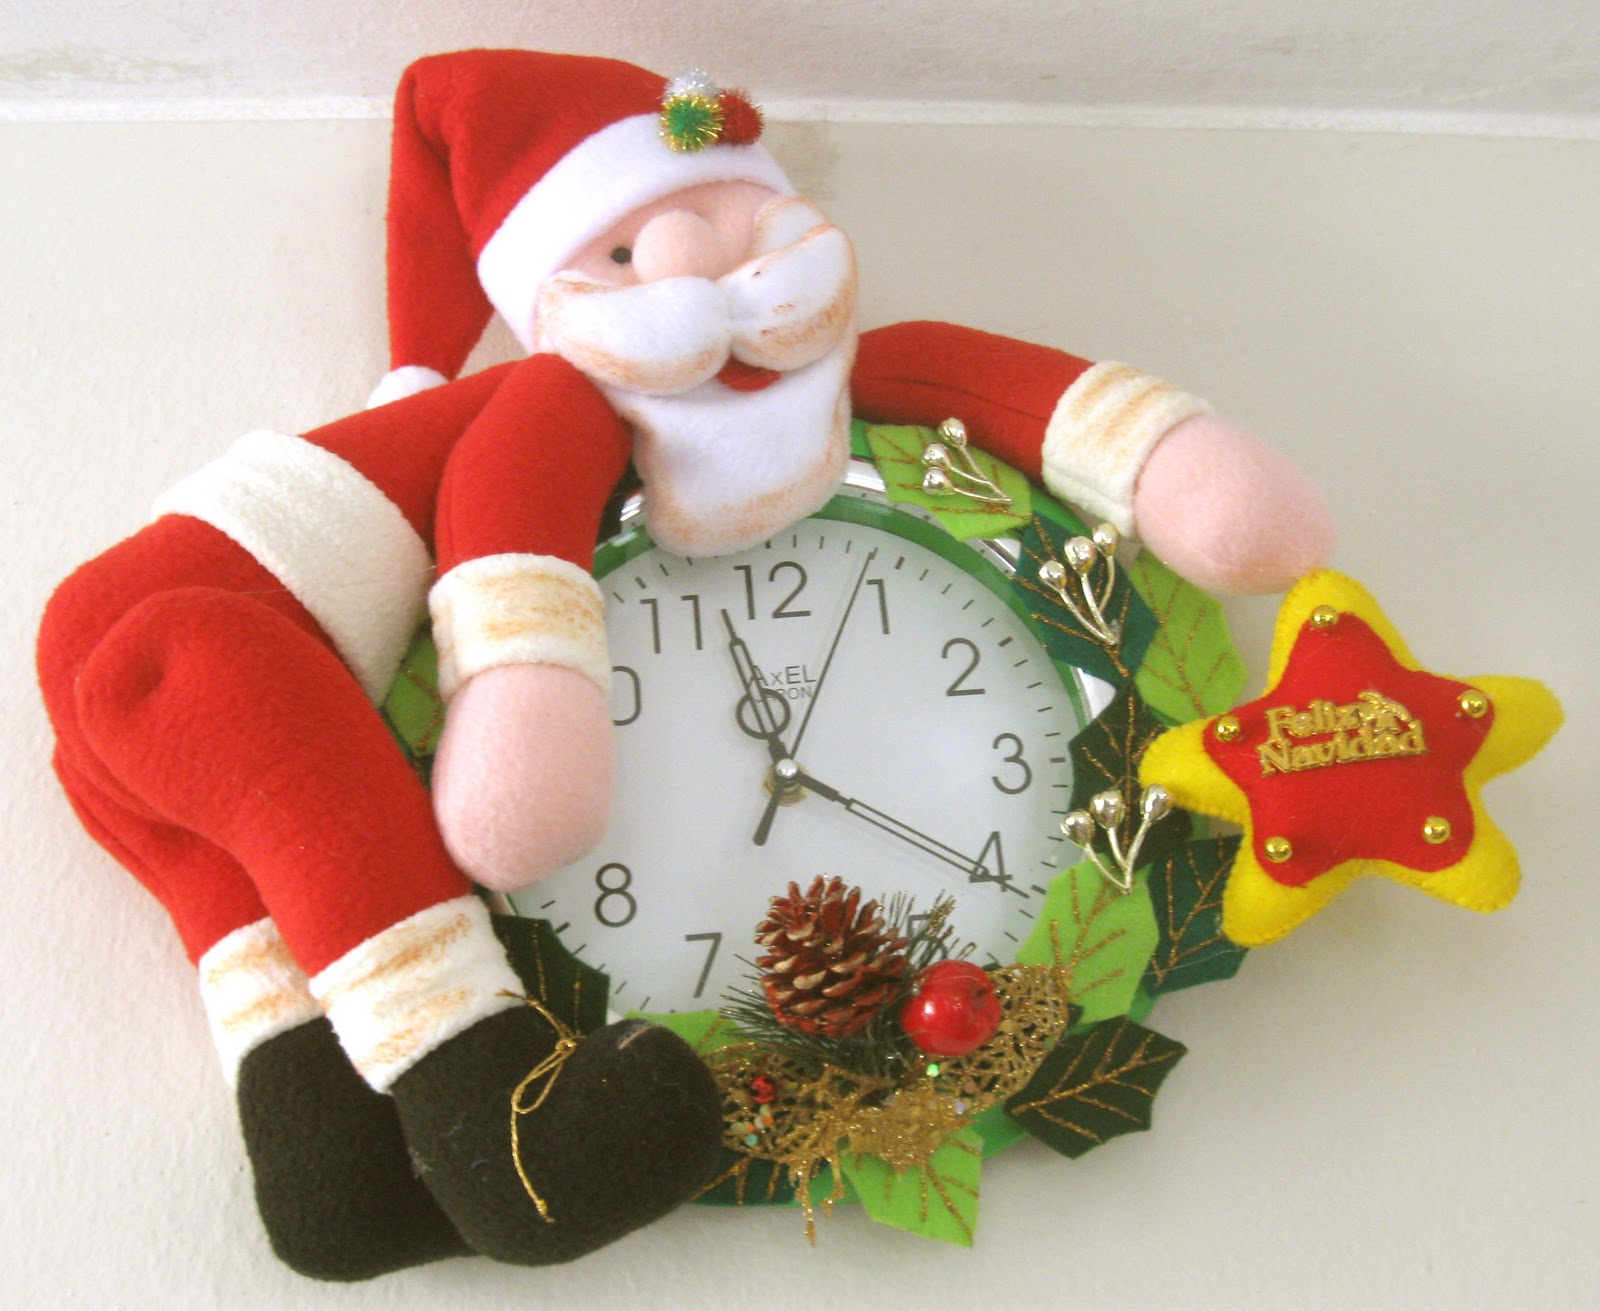 Reloj de pared papa noel manualidades maruji for Donde venden stickers para pared